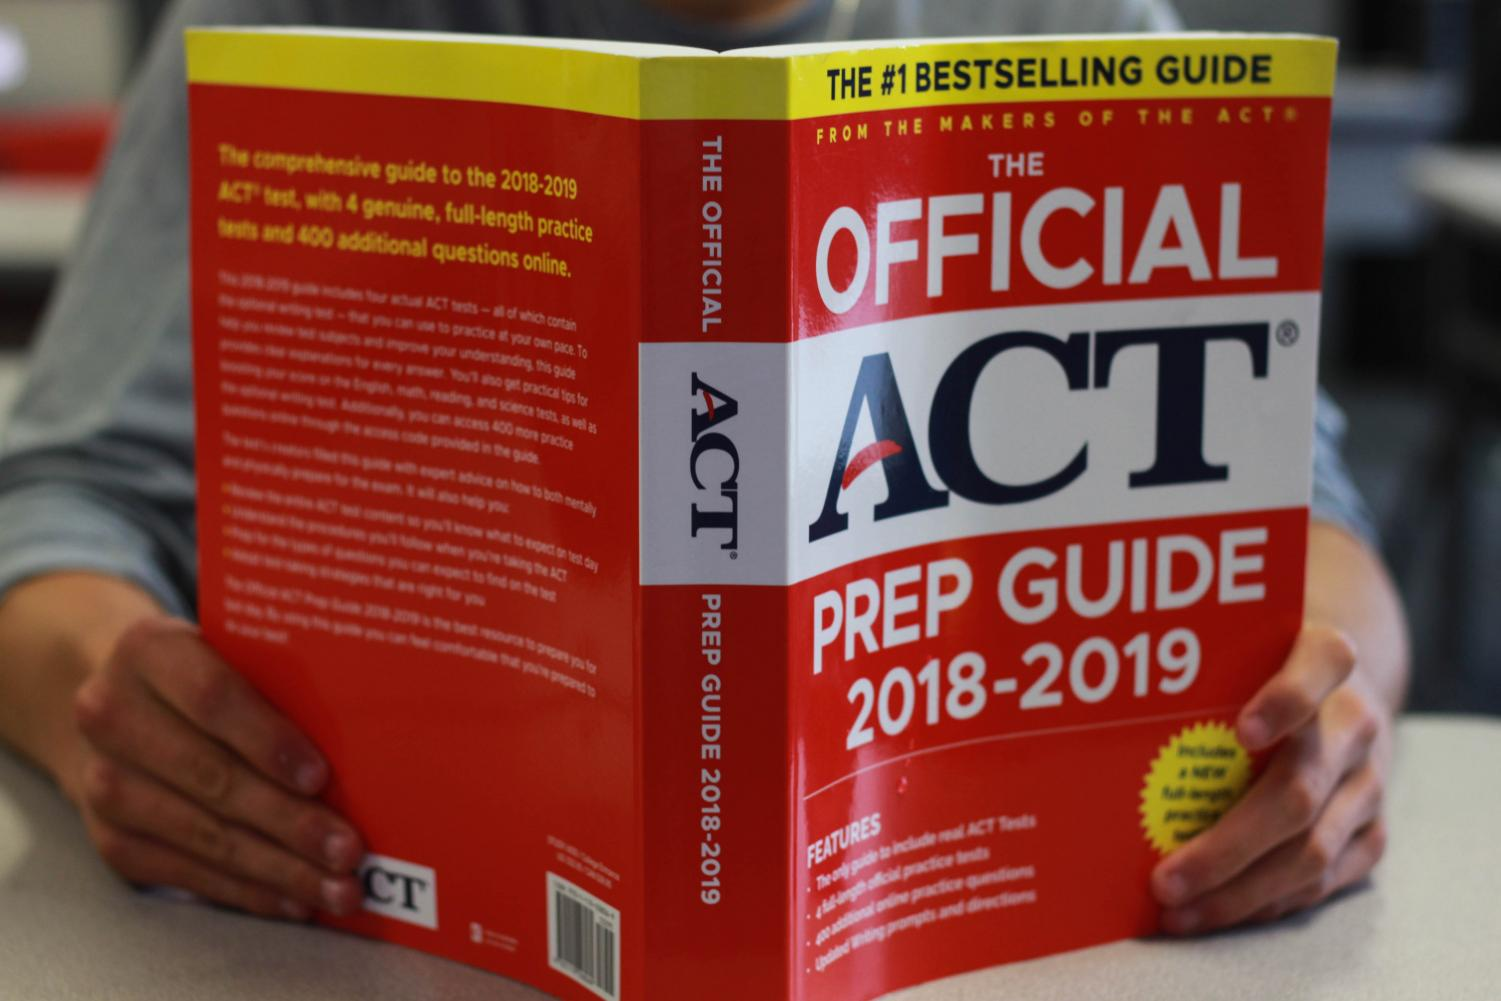 The new ACT classes that were provided for juniors have some problems that should be addressed.